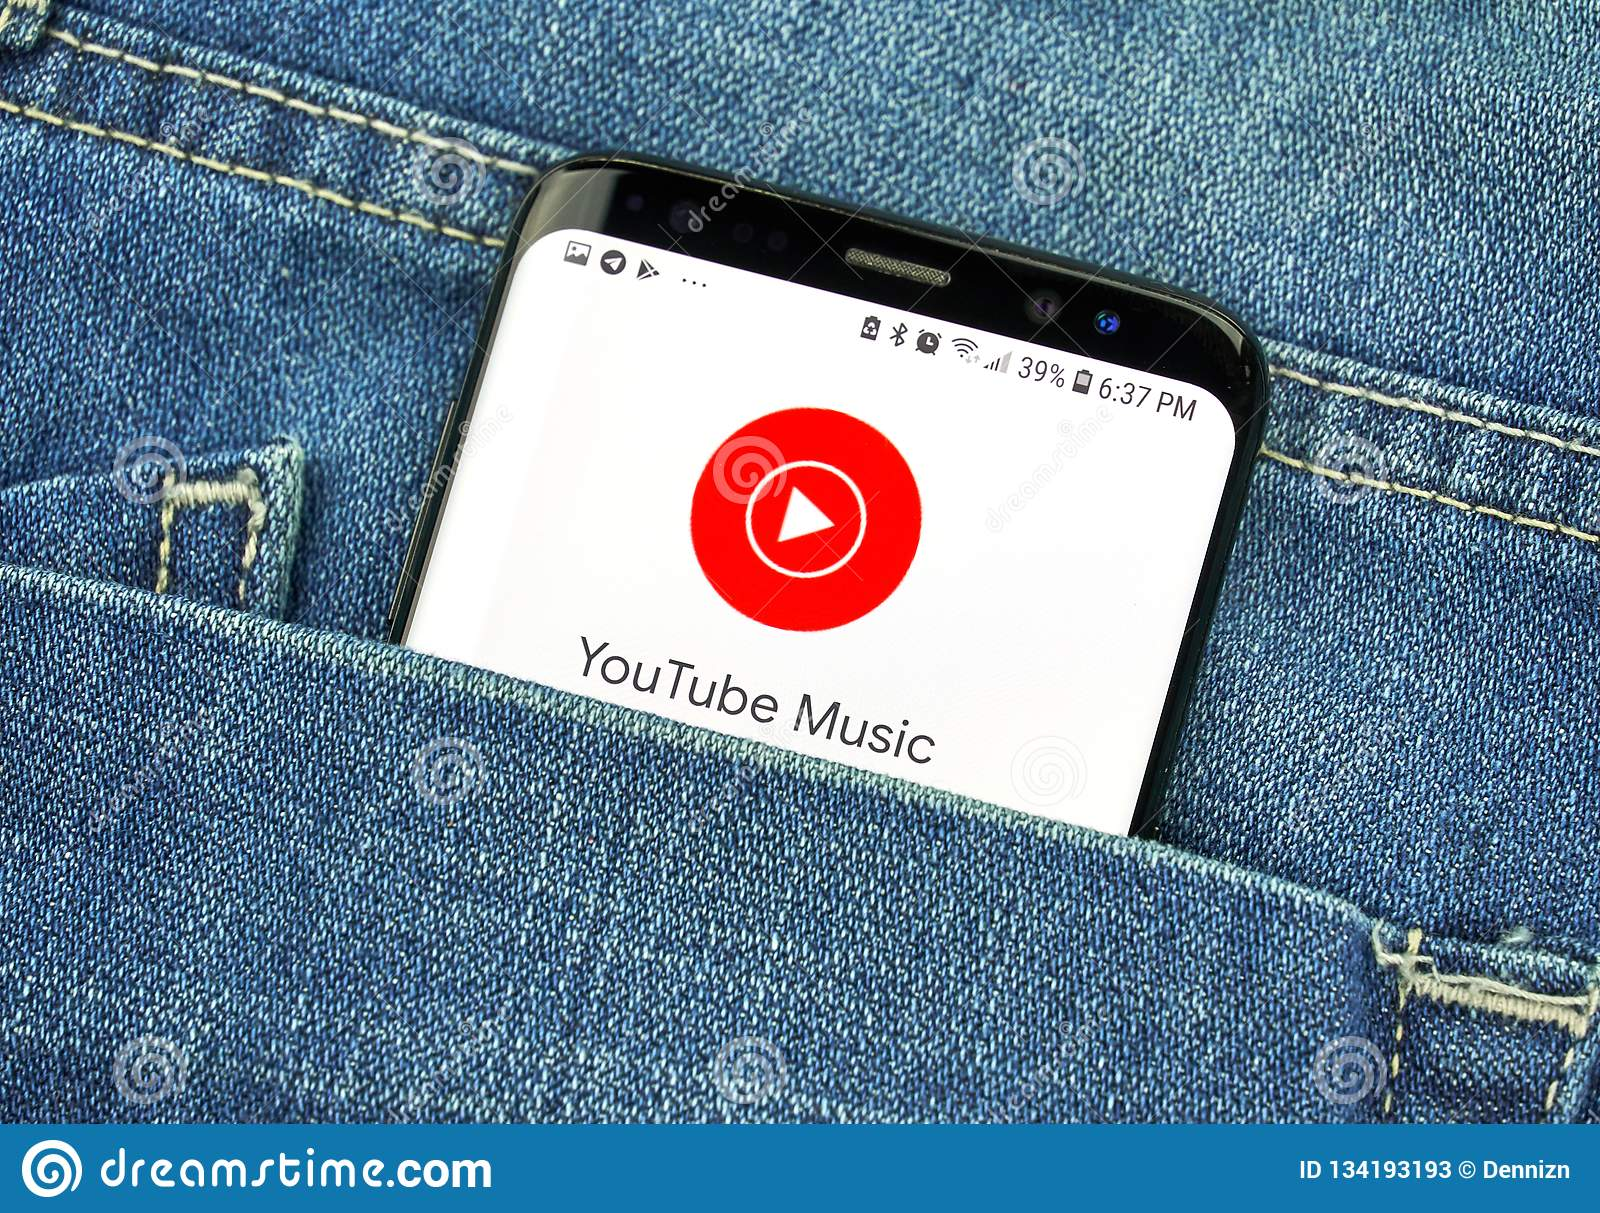 Youtube Music App On A Phone Screen In A Pocket Editorial Stock